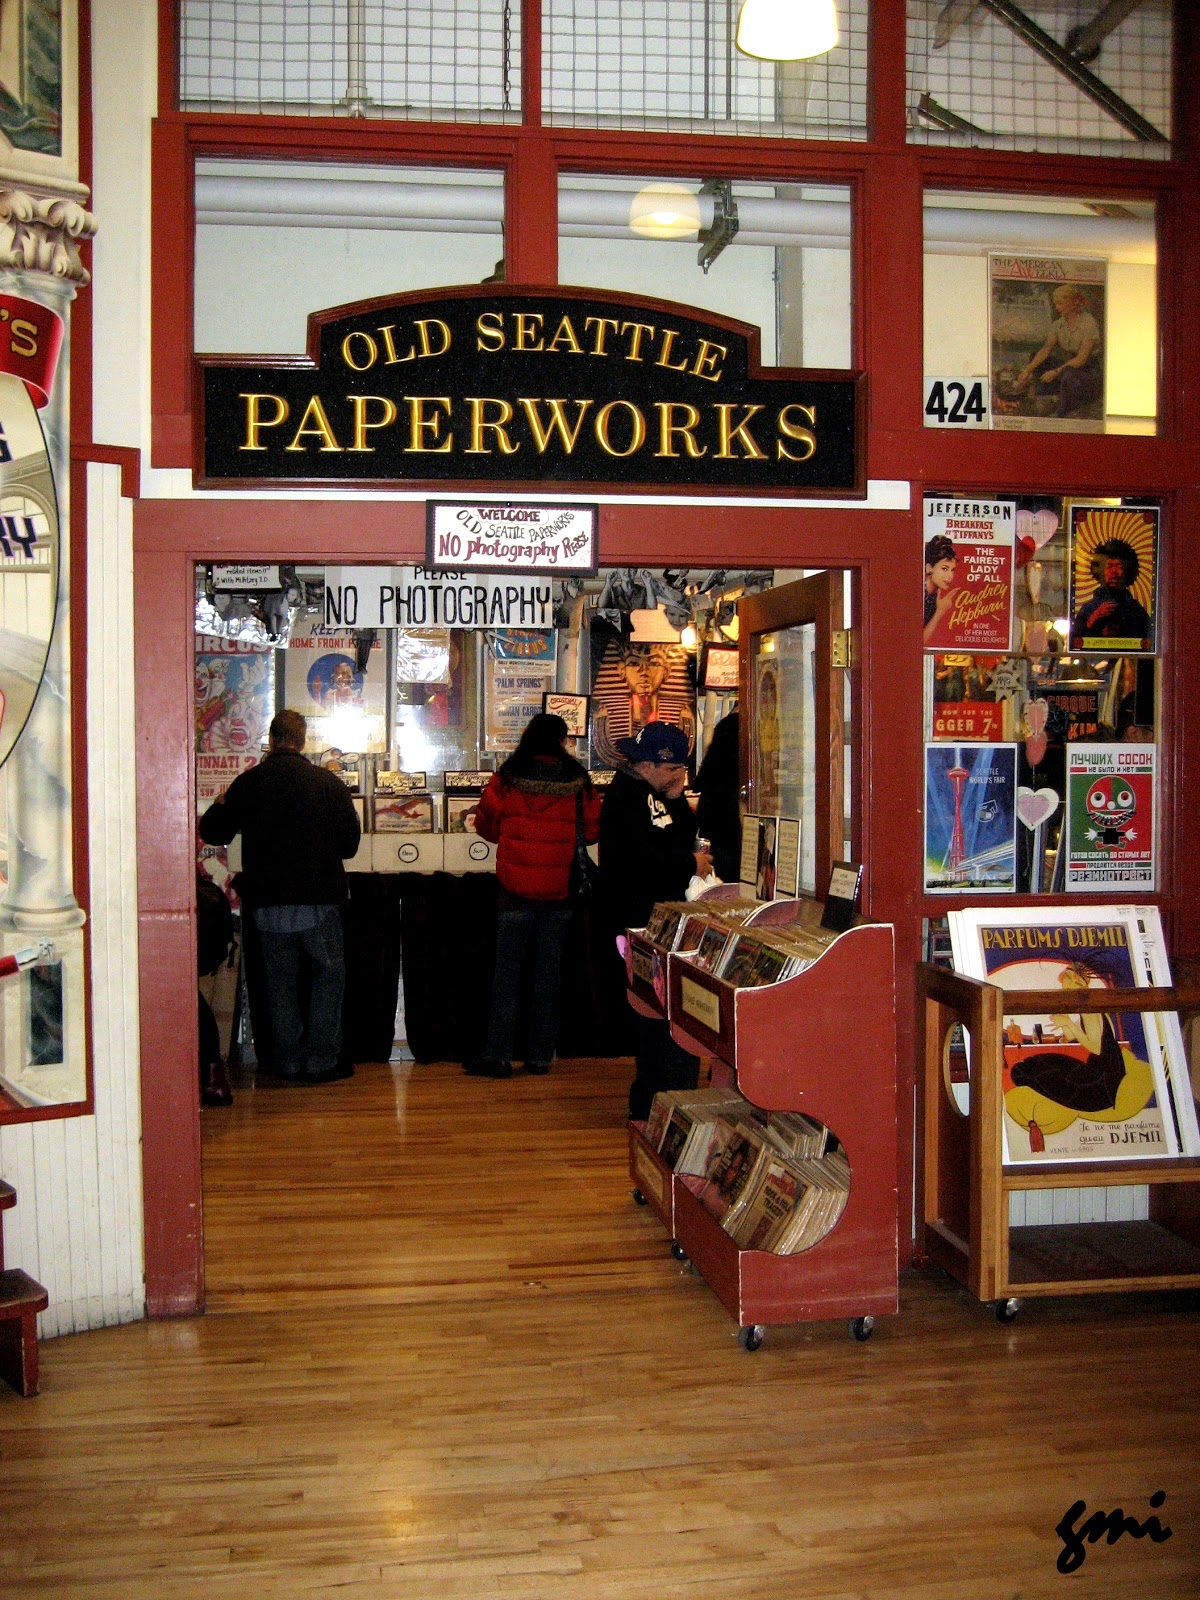 9 Old Seattle Paperworks Downstairs and across